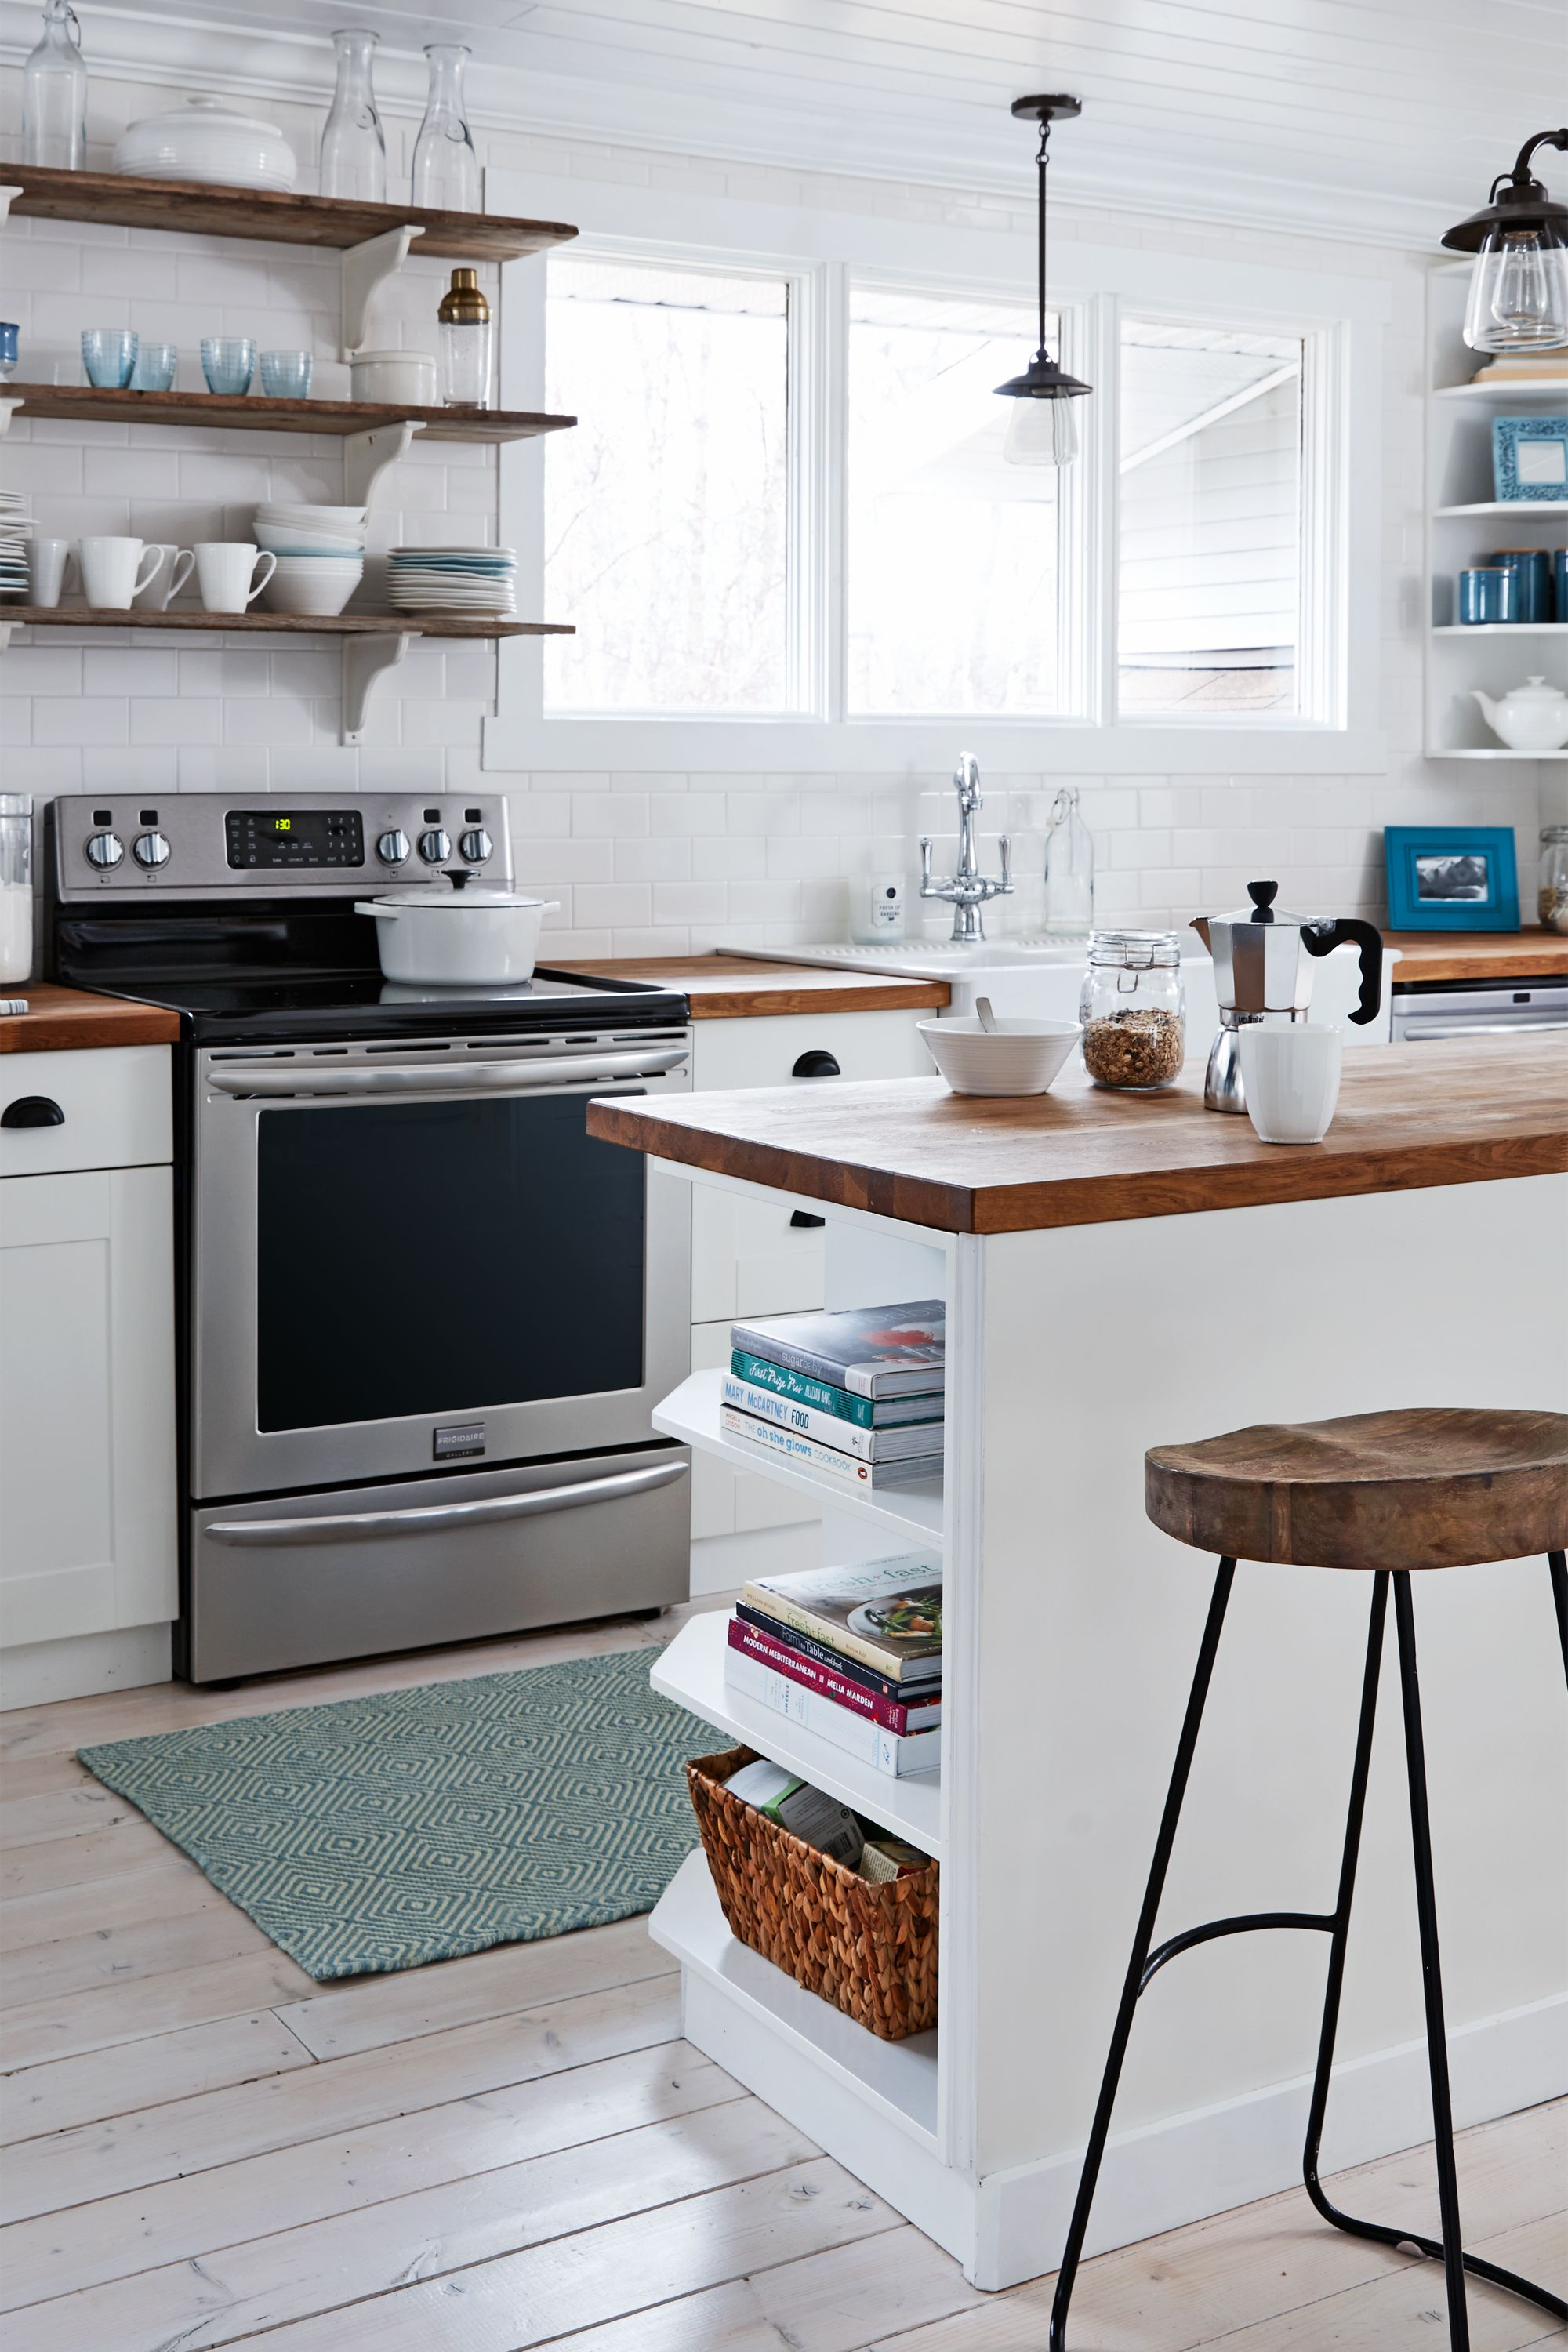 50+ Great Ideas for Kitchen Islands | Corner space, Spaces and Kitchens